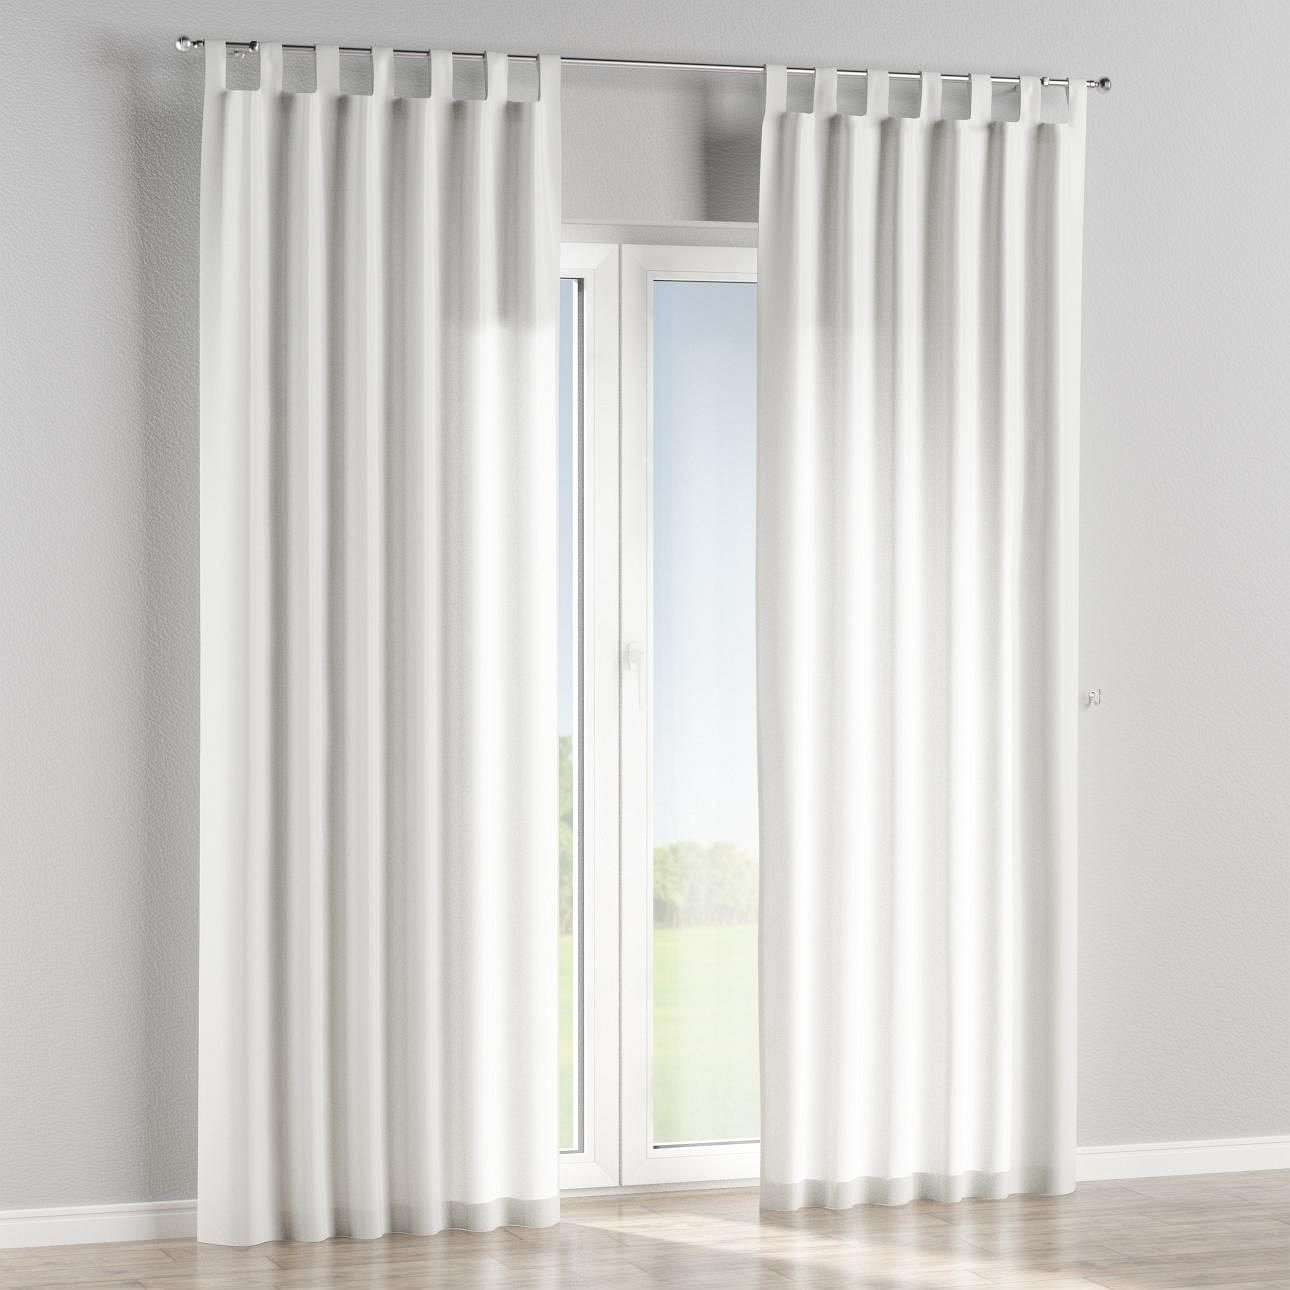 Tab top lined curtains in collection Cardiff, fabric: 136-31